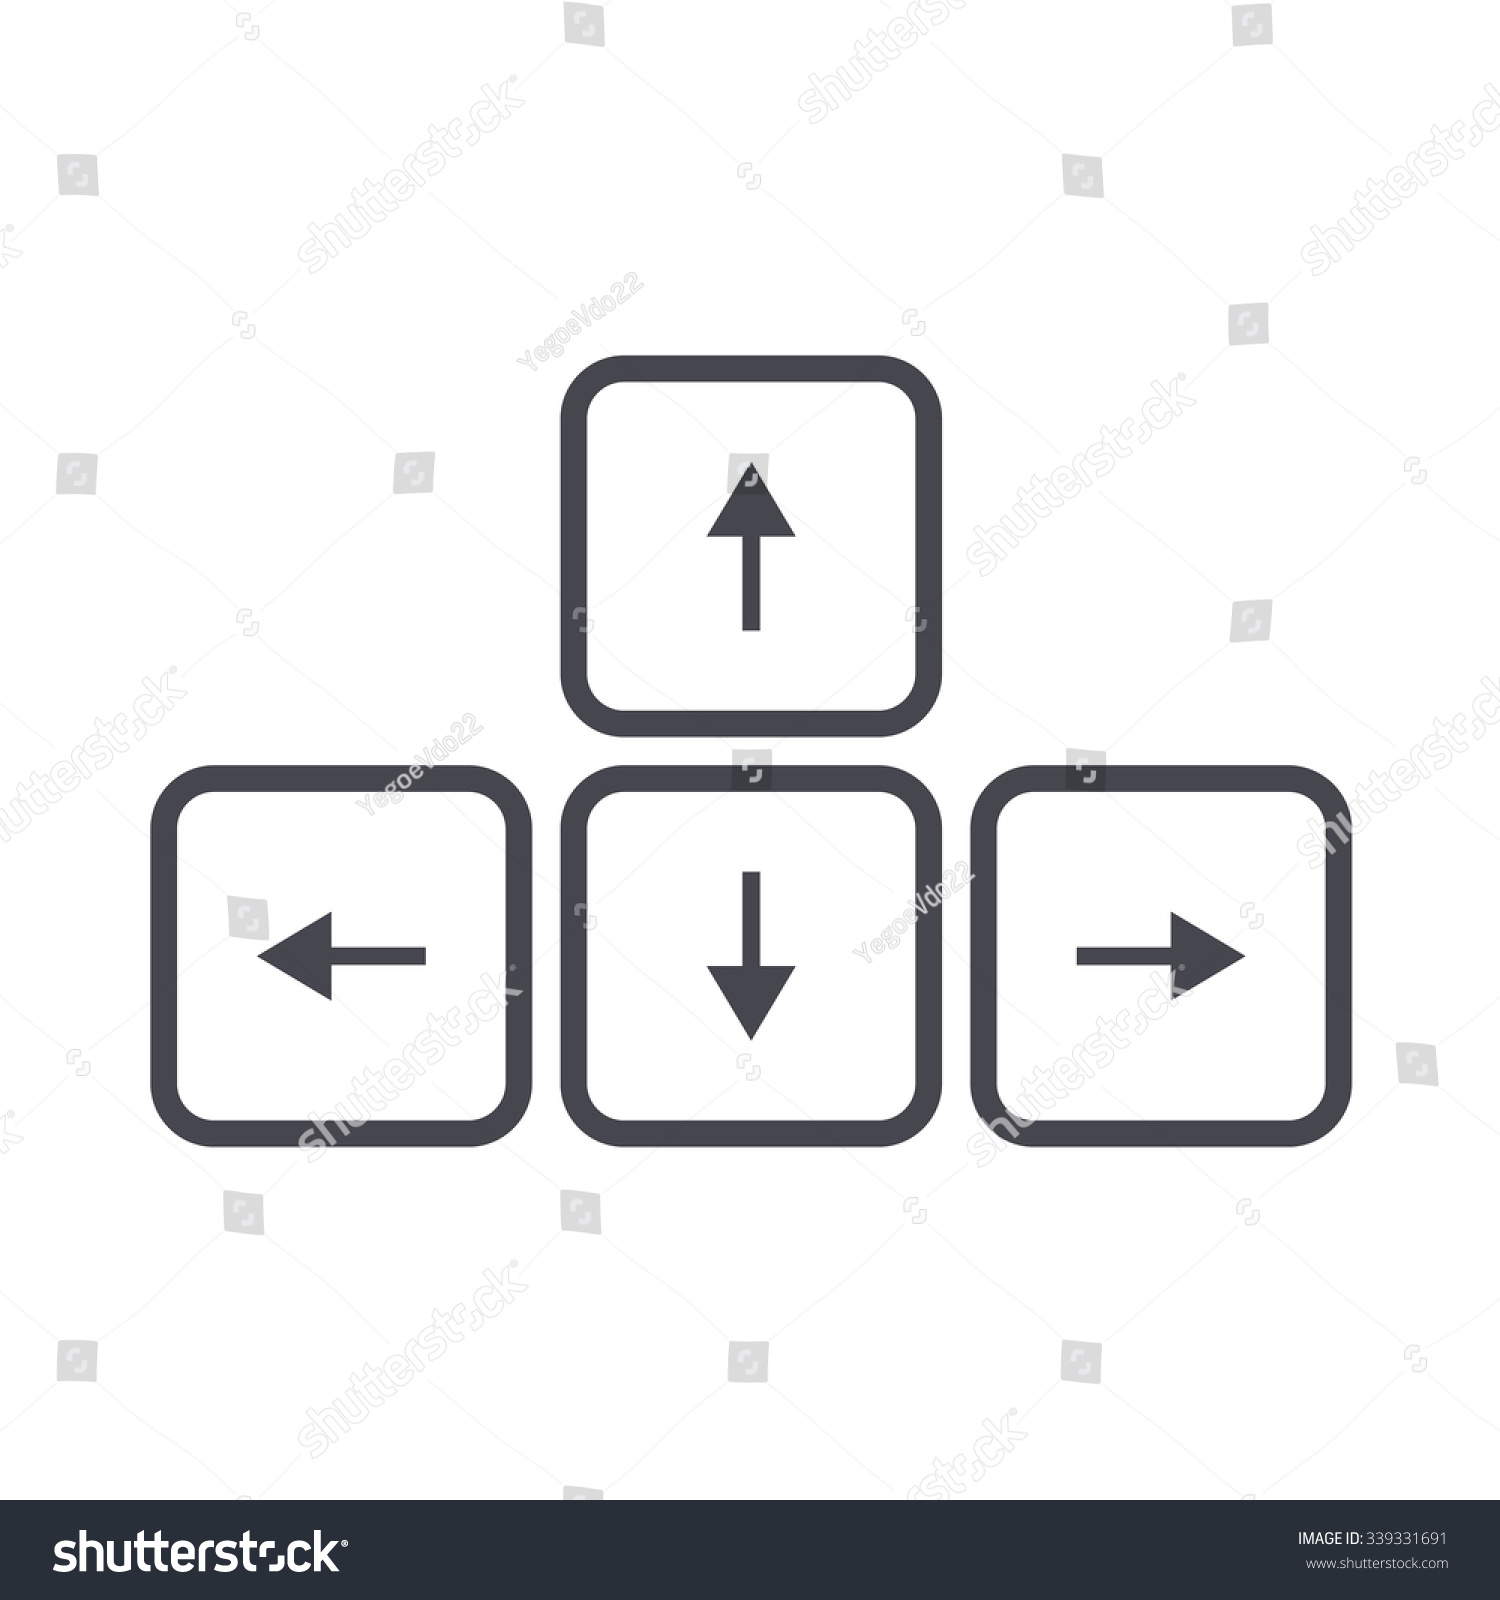 Arrow button on keyboard icon stock vector 339331691 shutterstock arrow button on keyboard icon biocorpaavc Choice Image